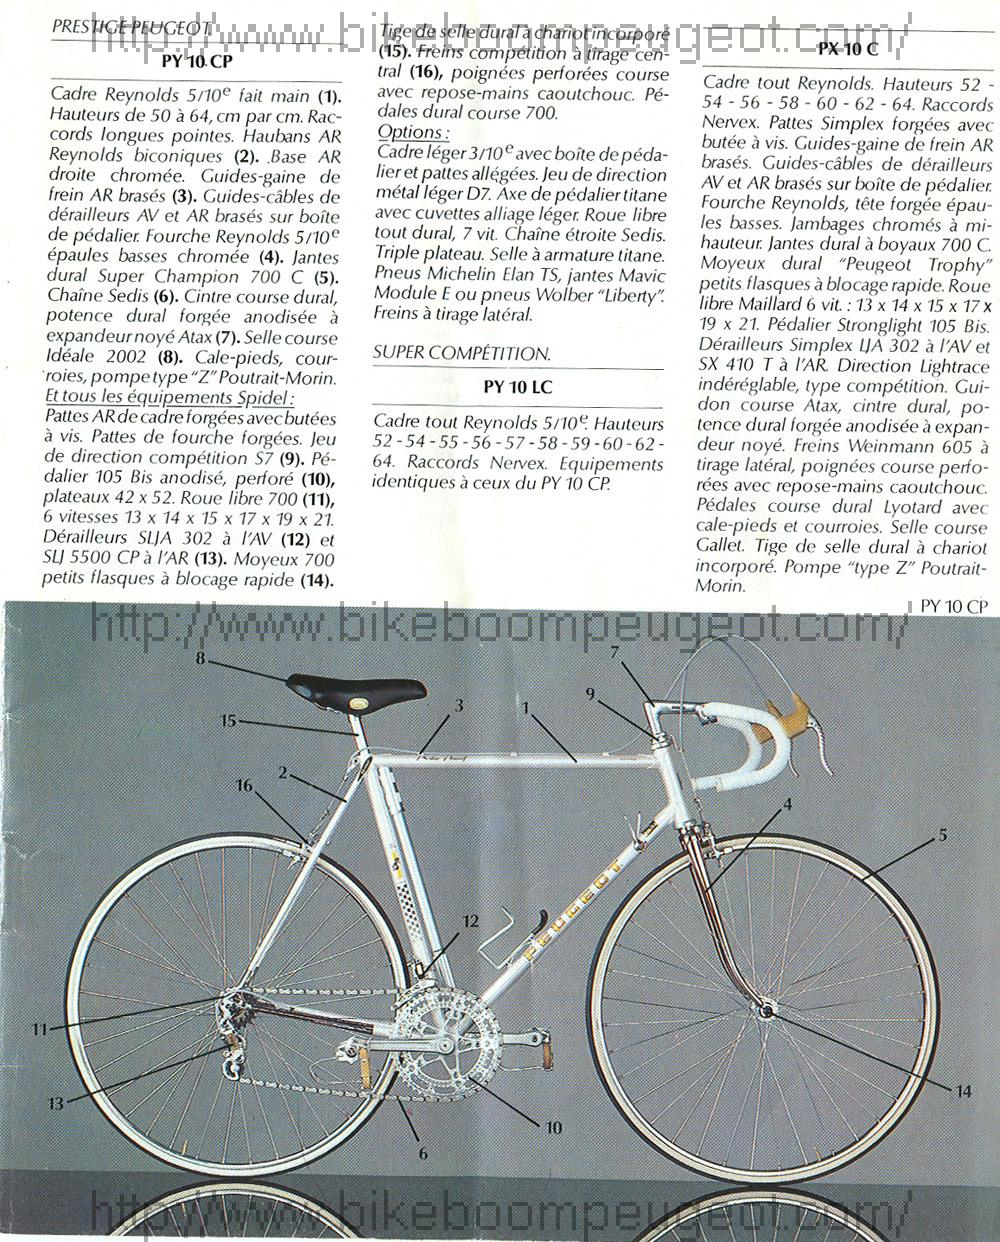 Peugeot Super Competition Full Reynolds 531 Peugeot_1979_French_Full_Brochure_Page4_BikeBoomPeugeot